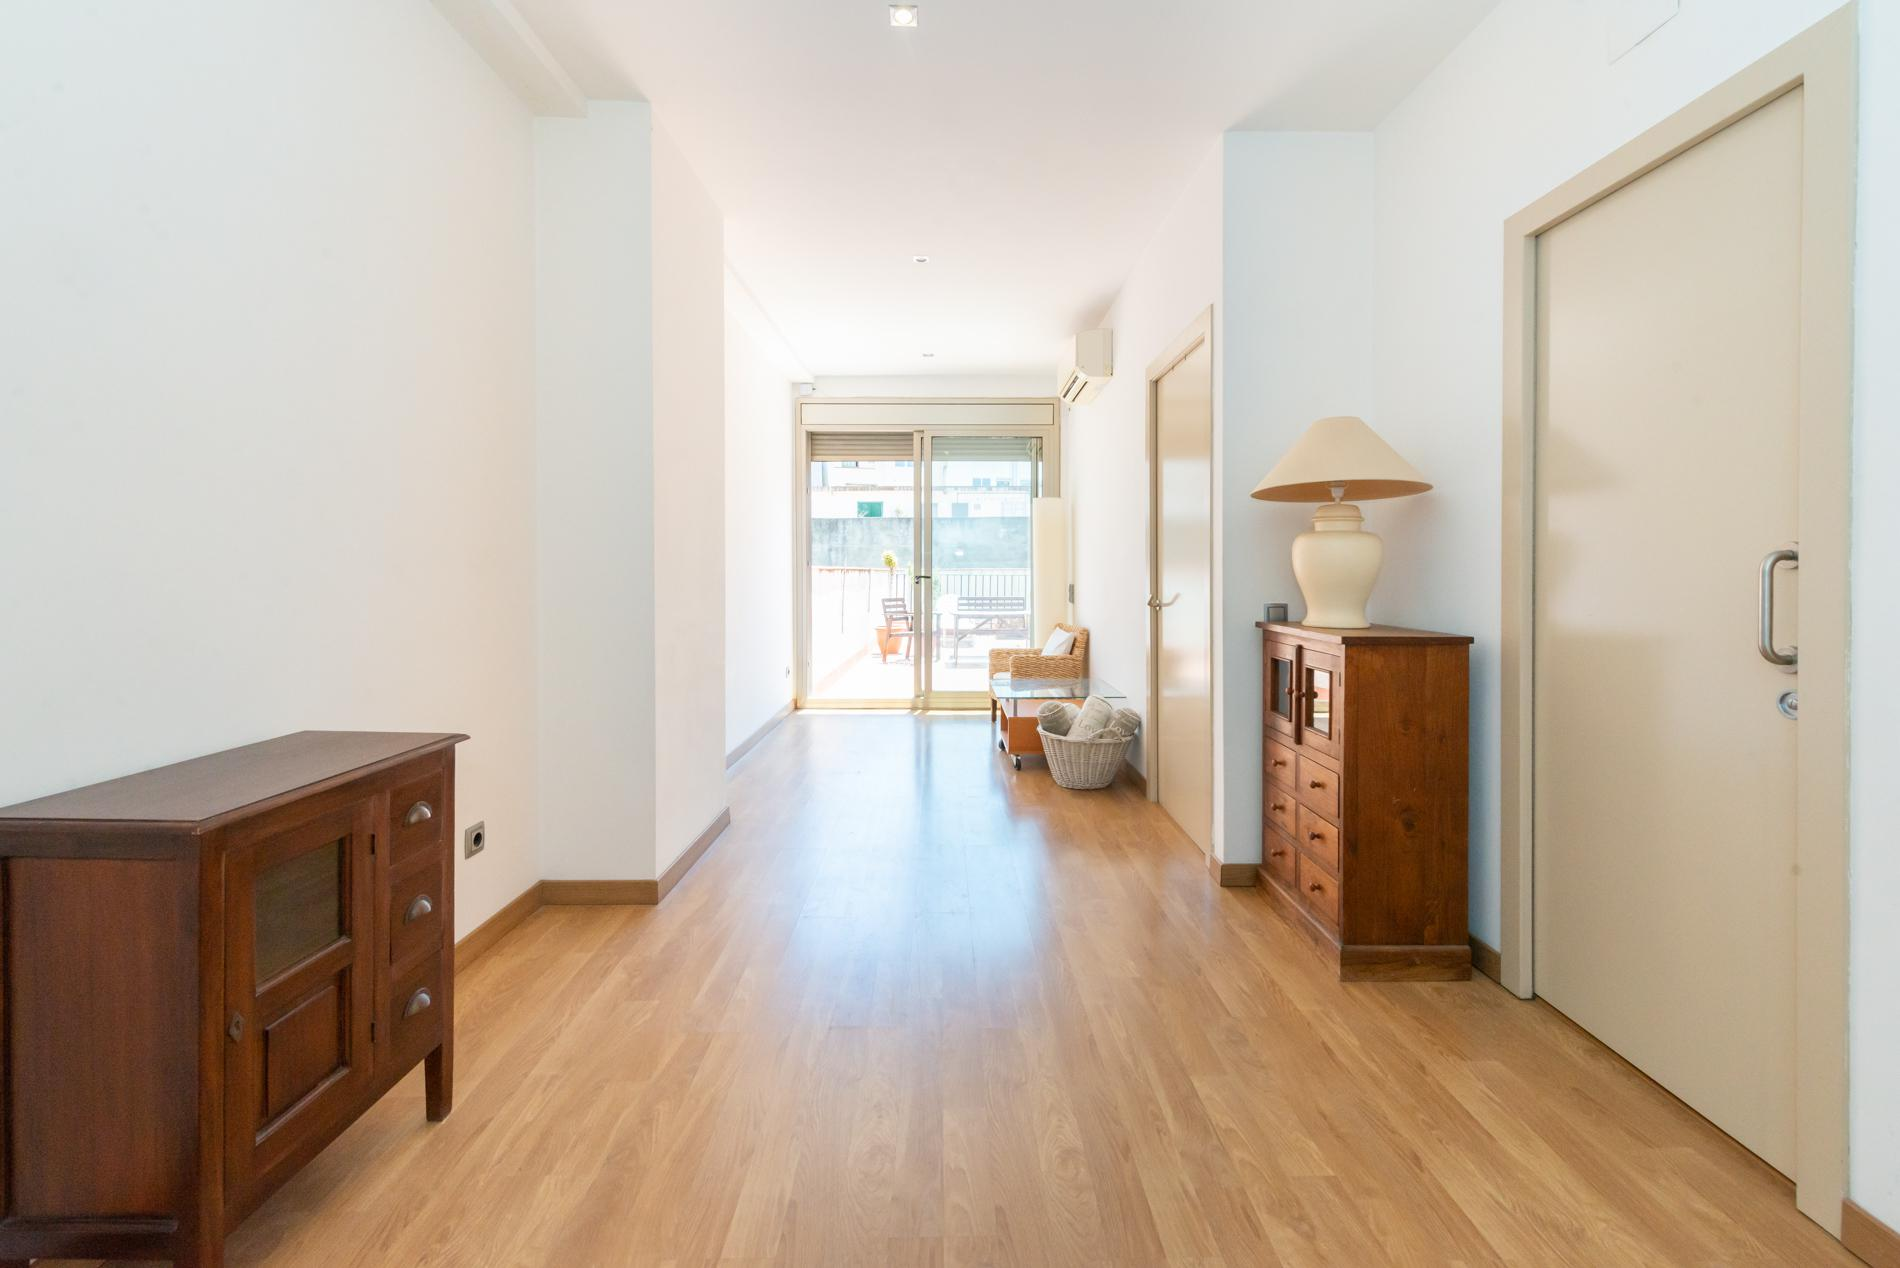 239277 Semi-detached house for sale in Sants-Montjuïc, Sants 8